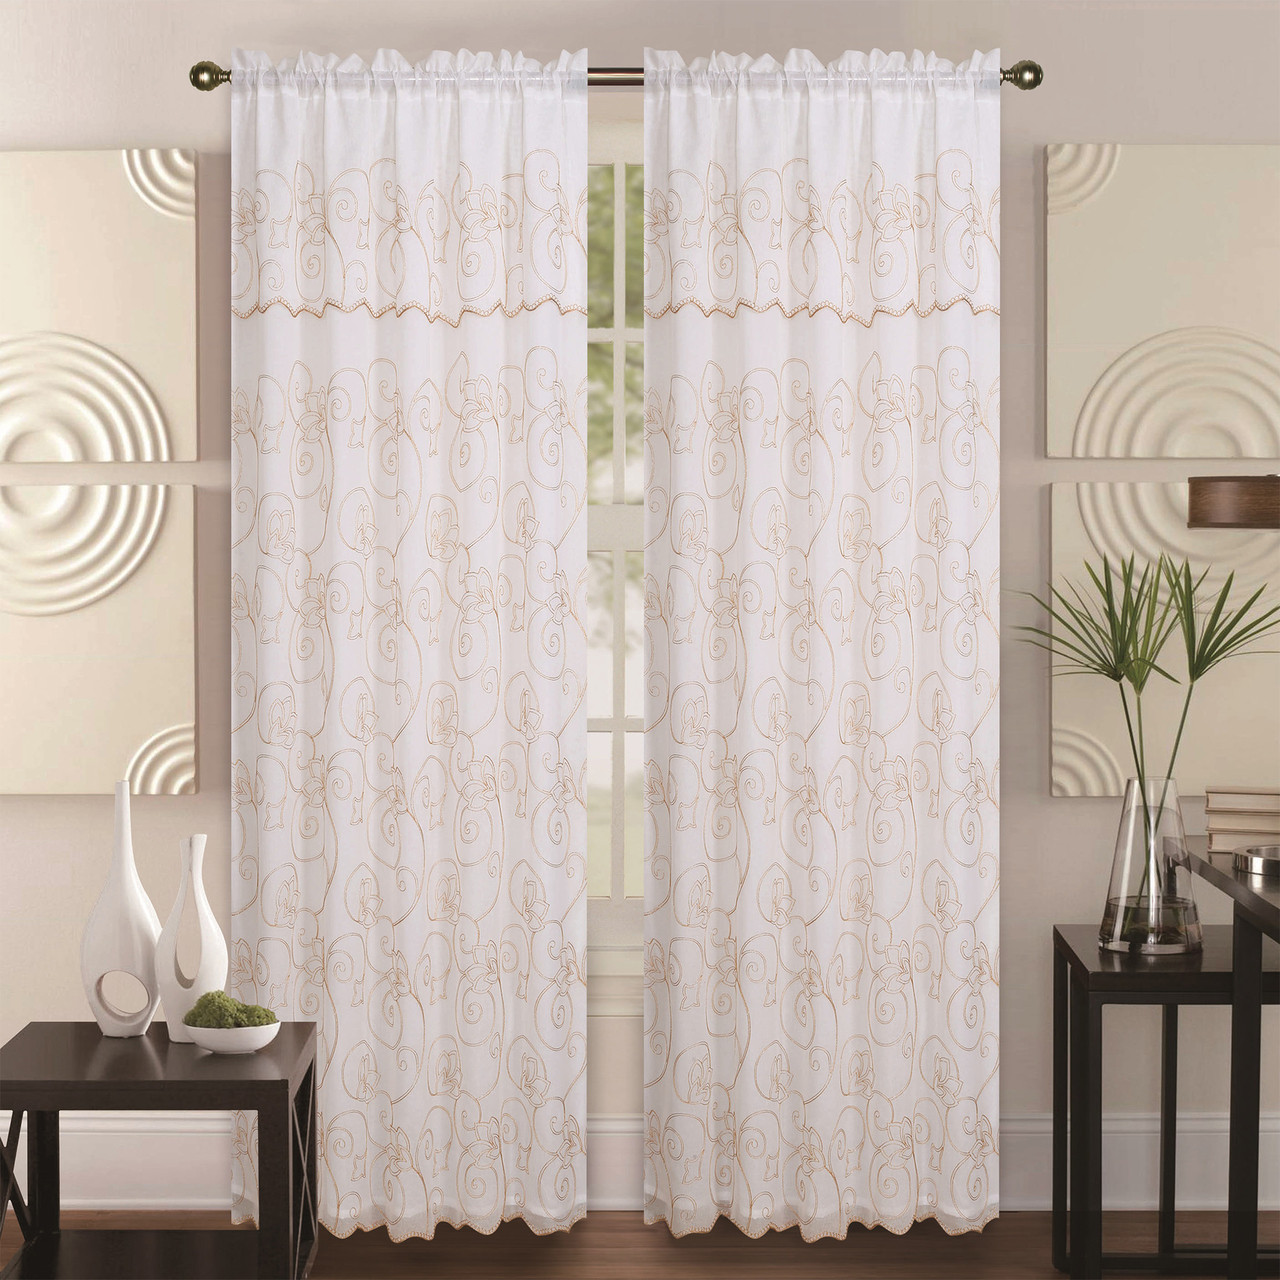 Curtain For Double Window Double Layer Embroidery Floral Sheer Linen Front Faux Silk Back Rod Pocket Valance Decorative Curtain Panel 55x84 Inch Selma Single Drape Panel